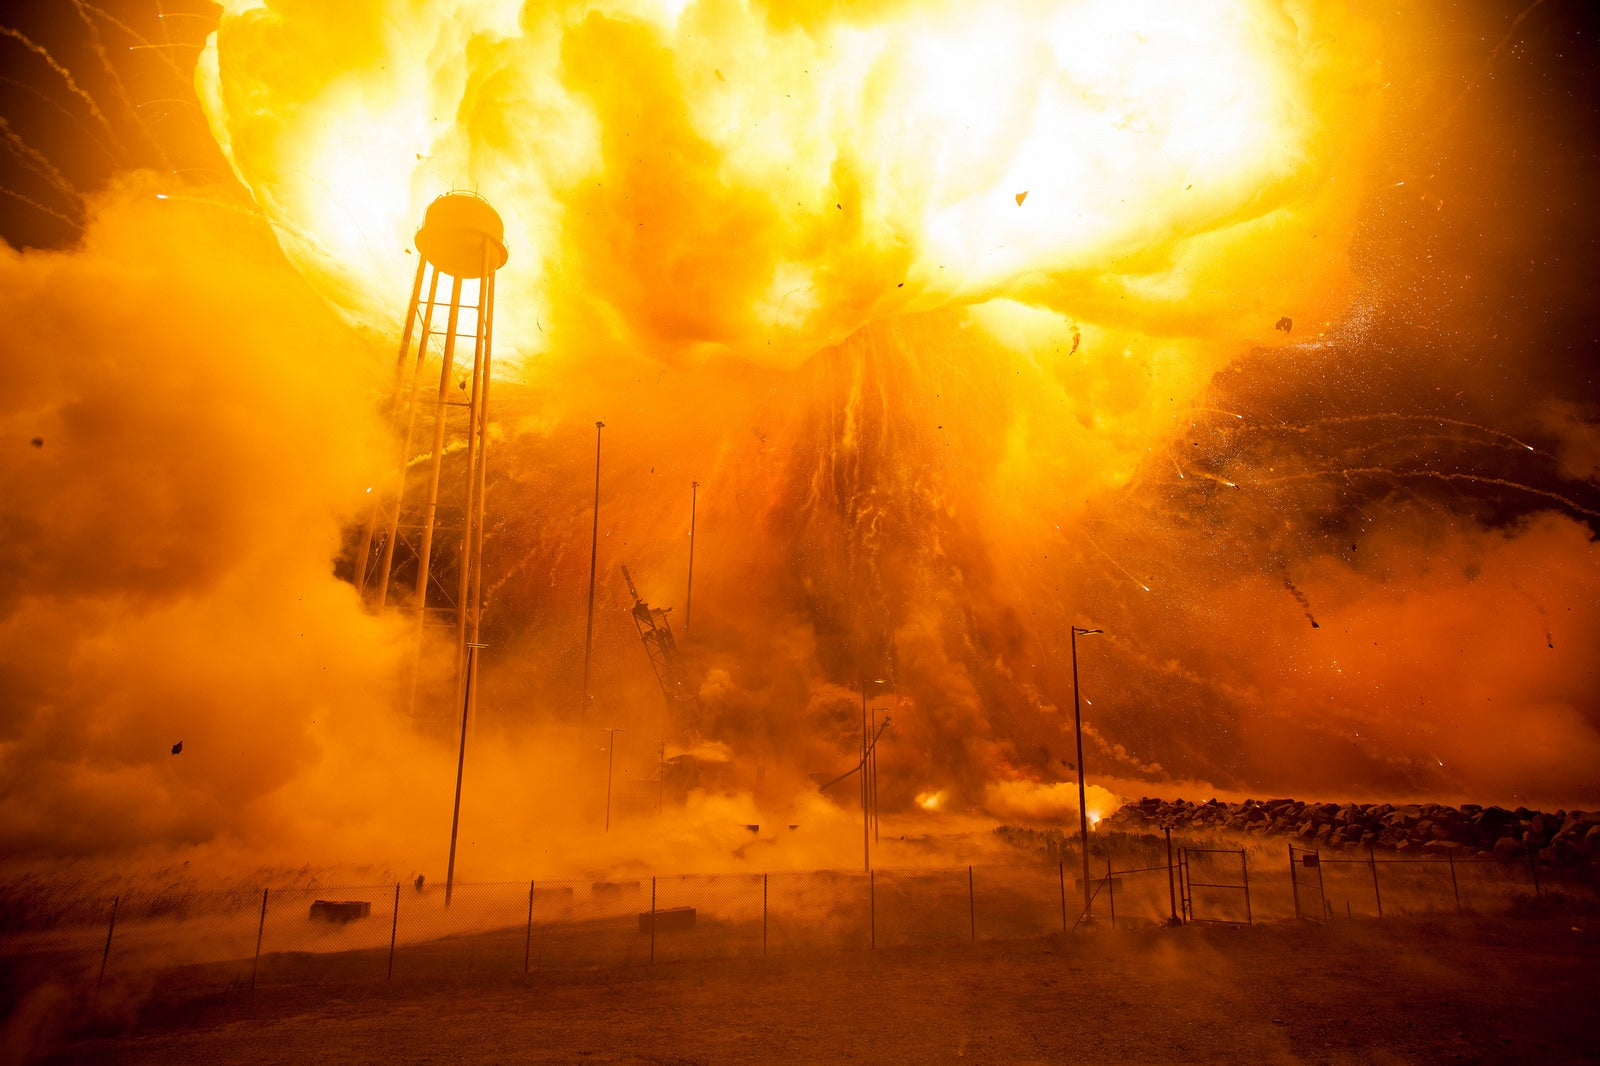 NASA's Photos of a Rocket Explosion Make Fine Art Out of Scientific Catastrophe